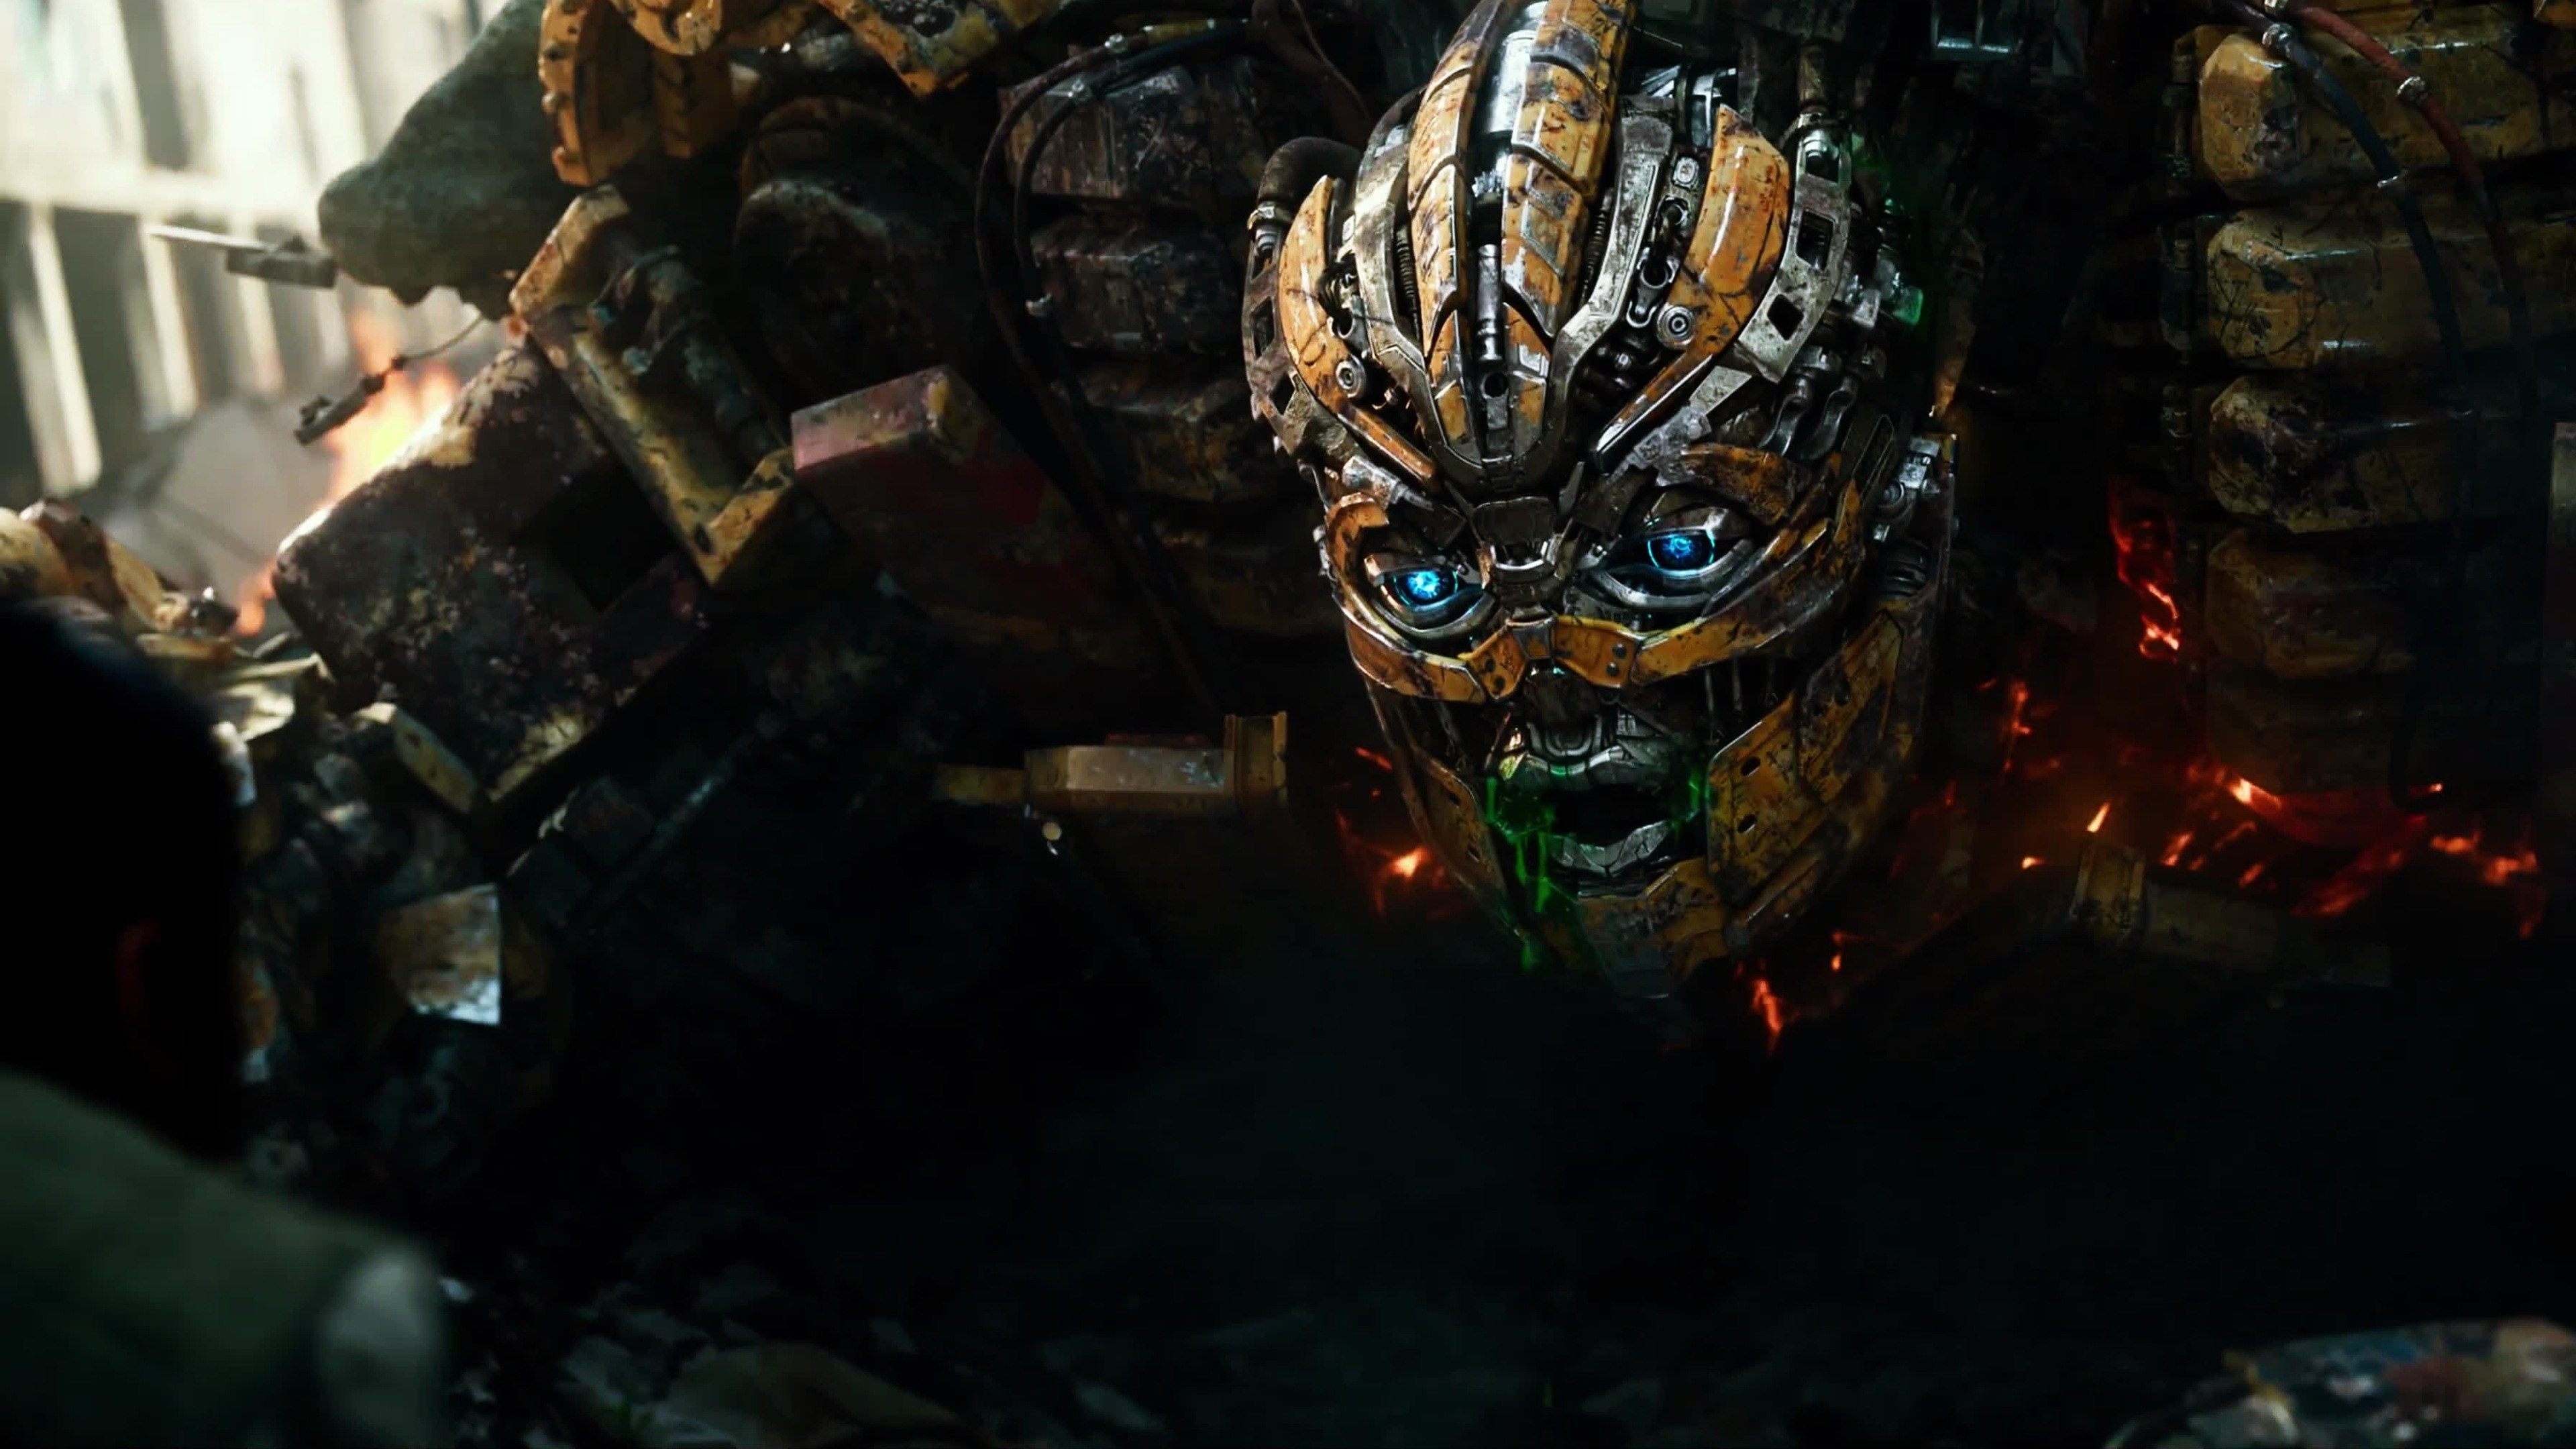 Res: 3840x2160, Bumblebee Transformers The Last Knight Best Wallpaper 19857